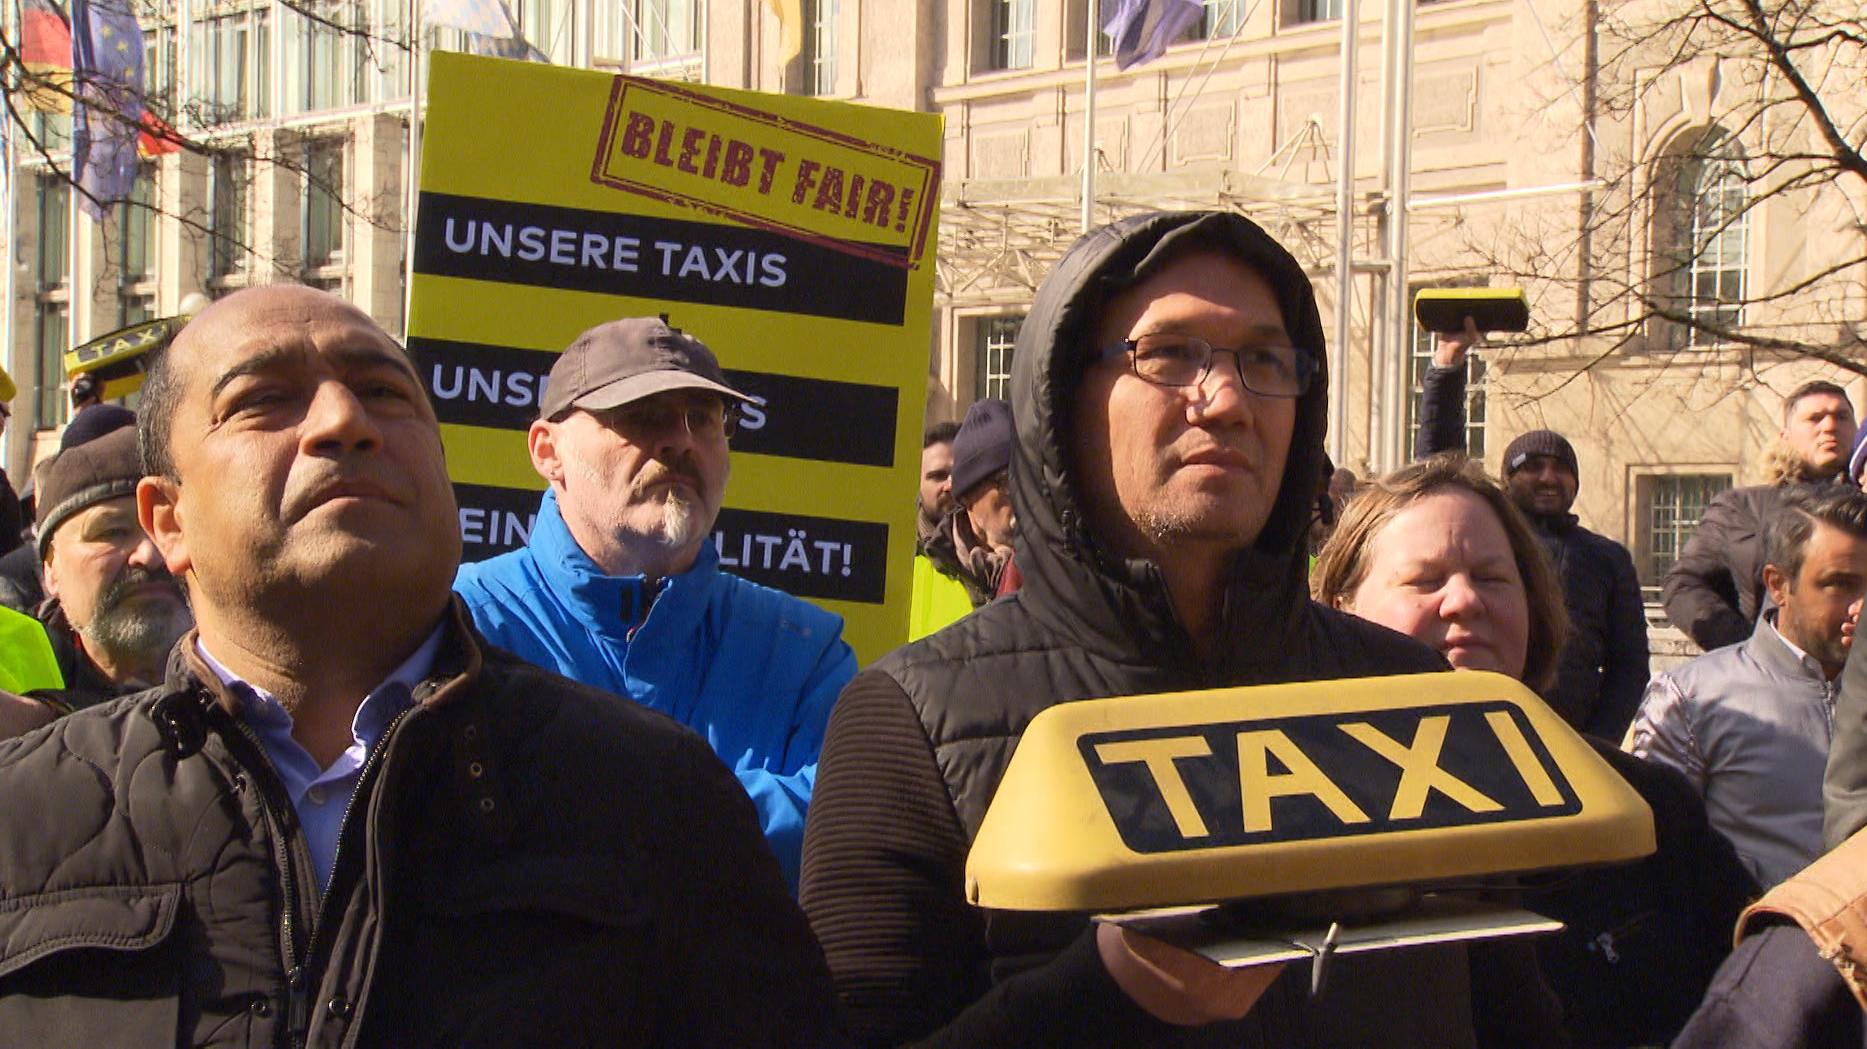 Protest der Taxifahrer